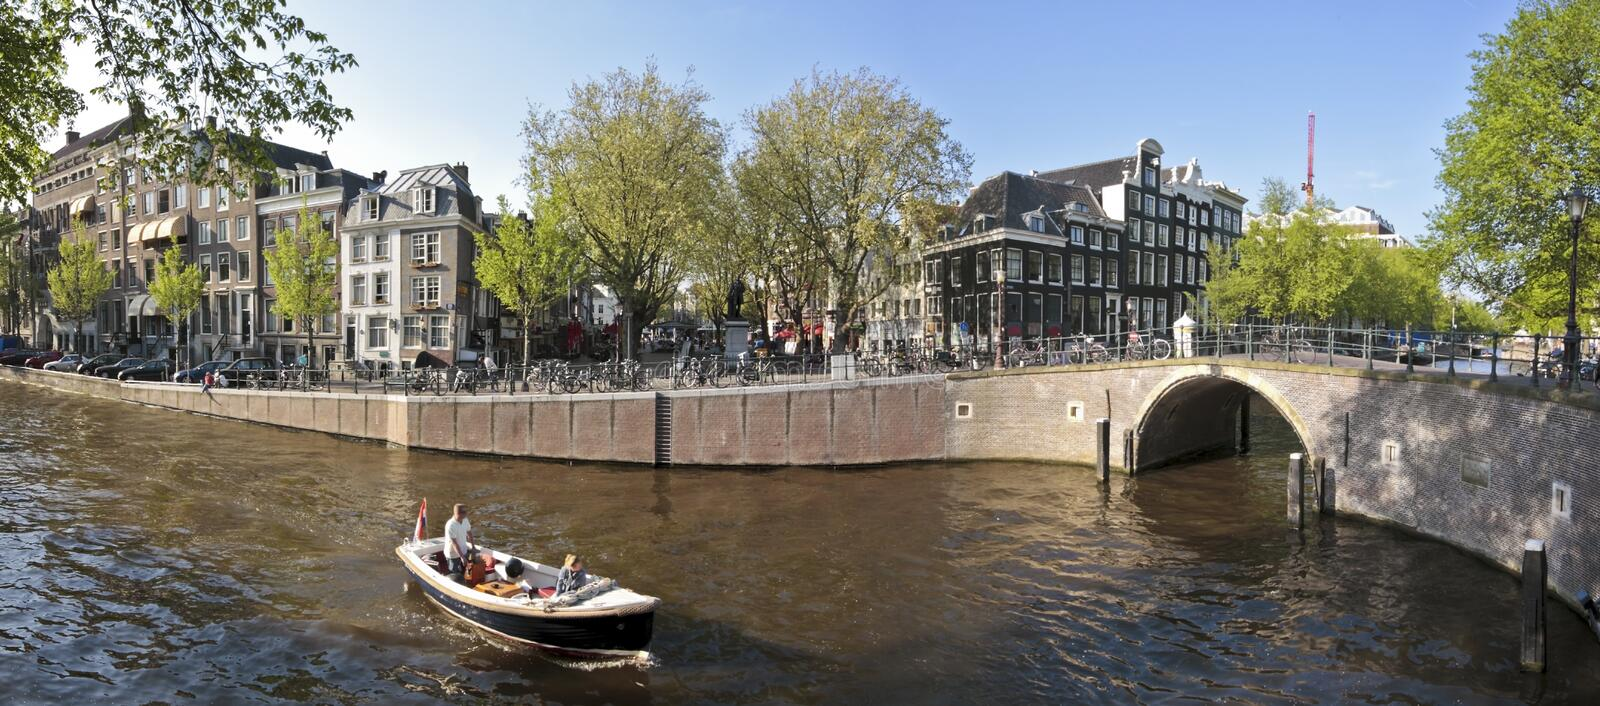 Amsterdam Spui In The Netherlands Stock Photos